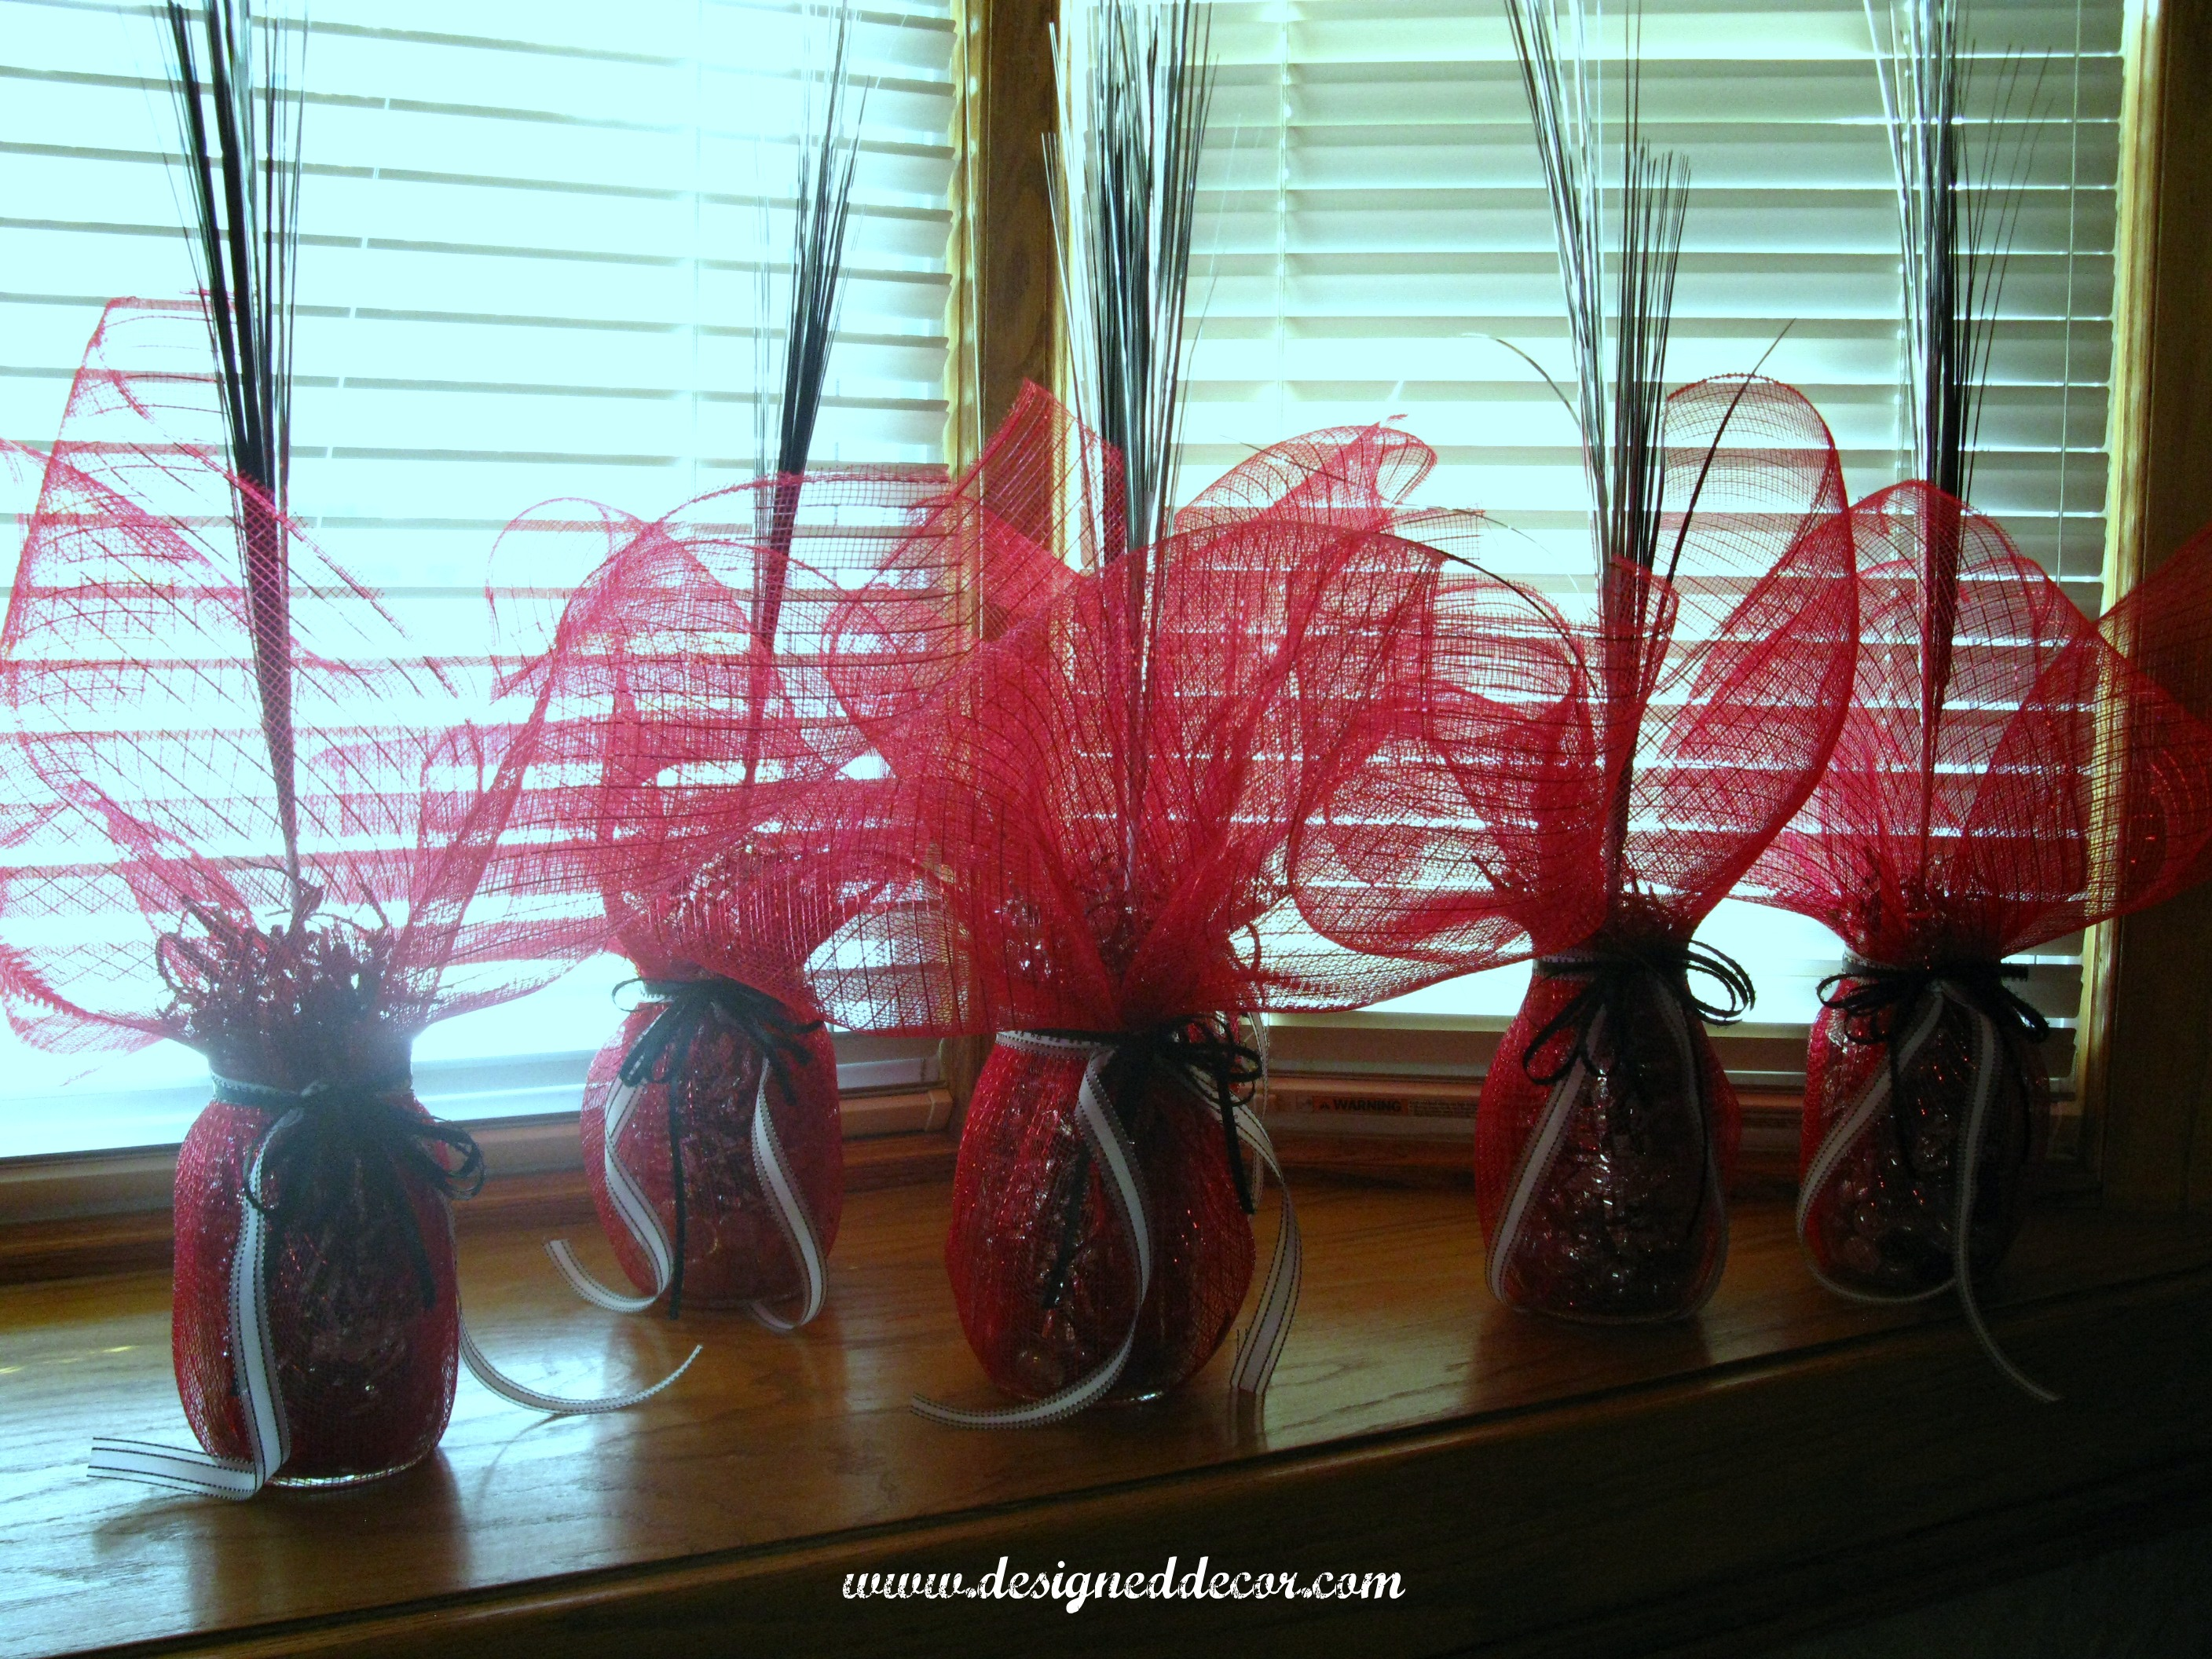 Graduation Party Table Decorations. - Designed Decor